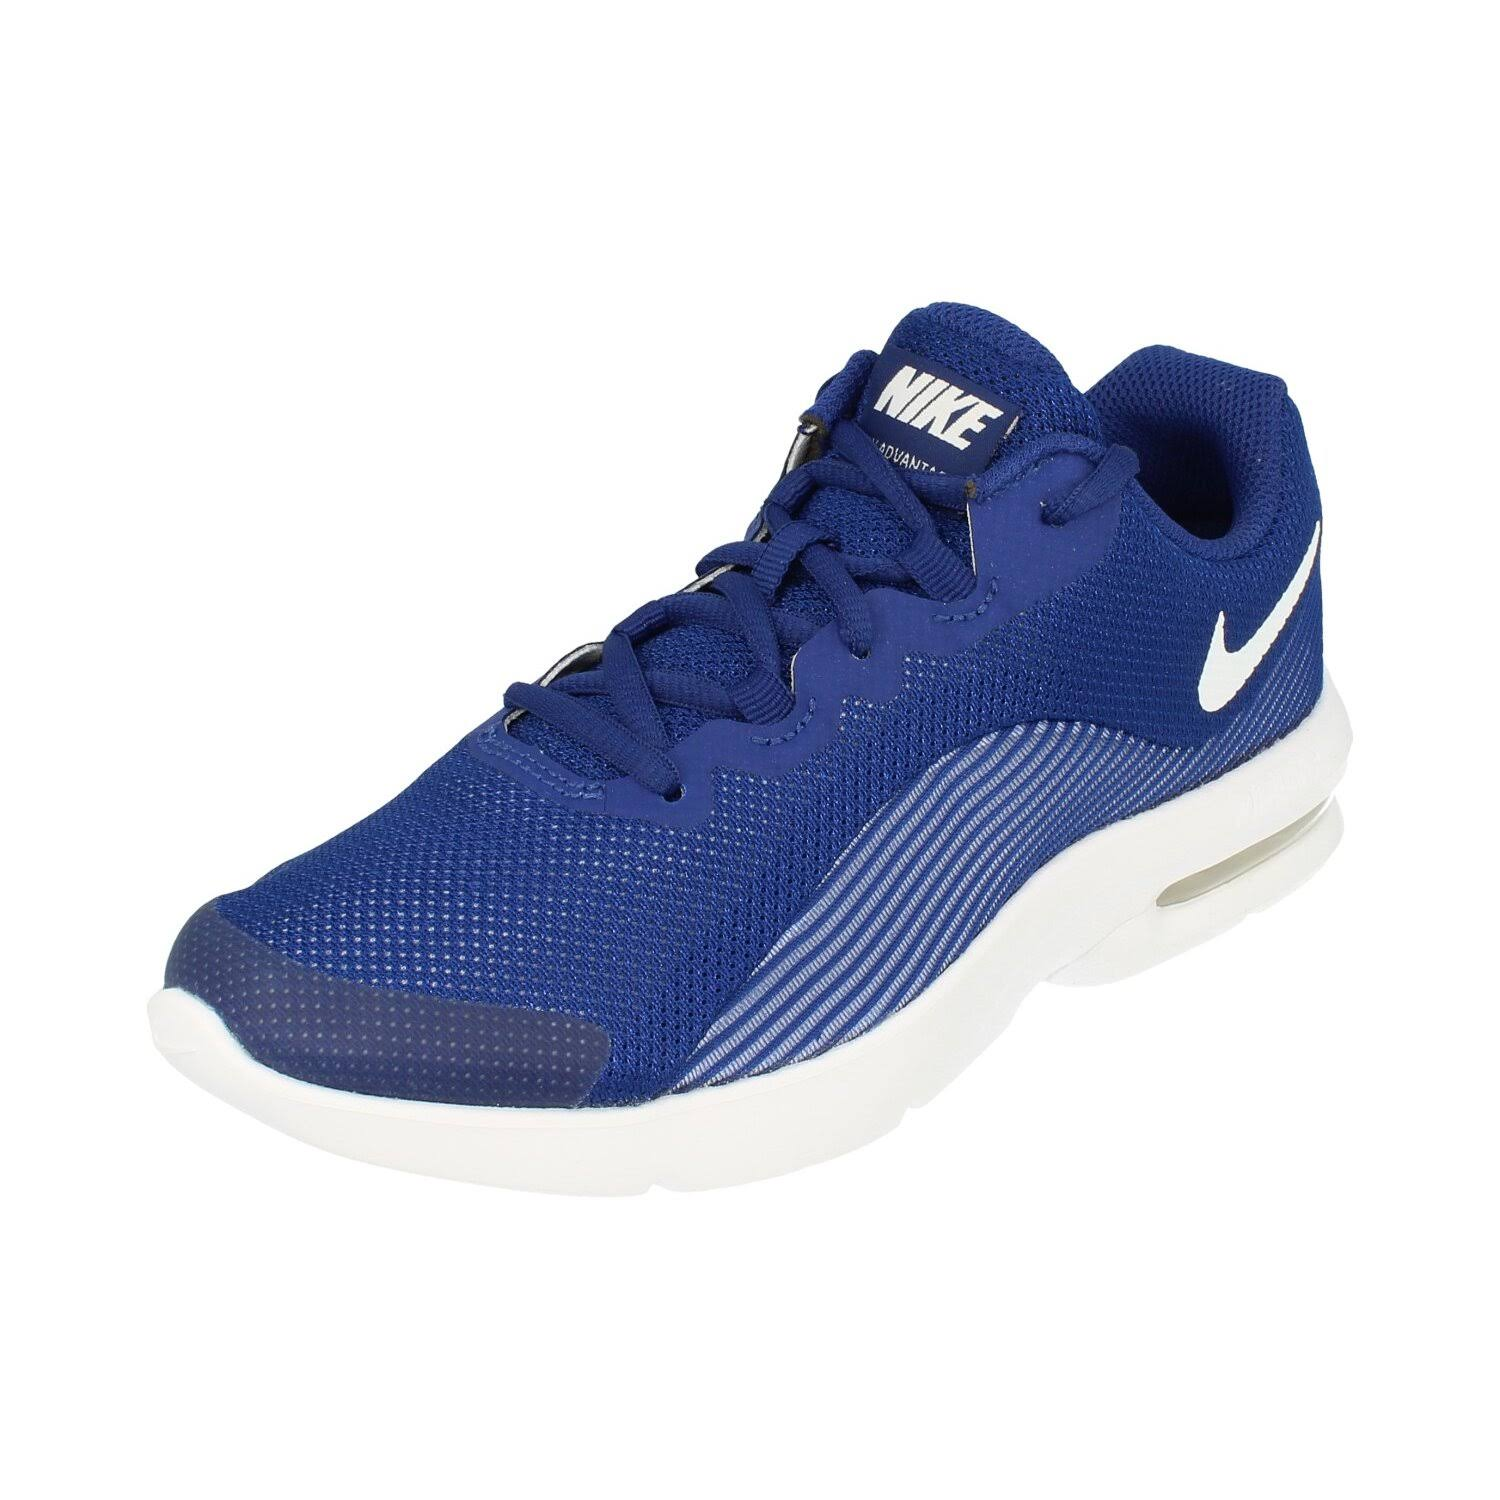 (3) Nike Air Max Advantage 2 GS Running Trainers Ah3432 sneakers Shoes